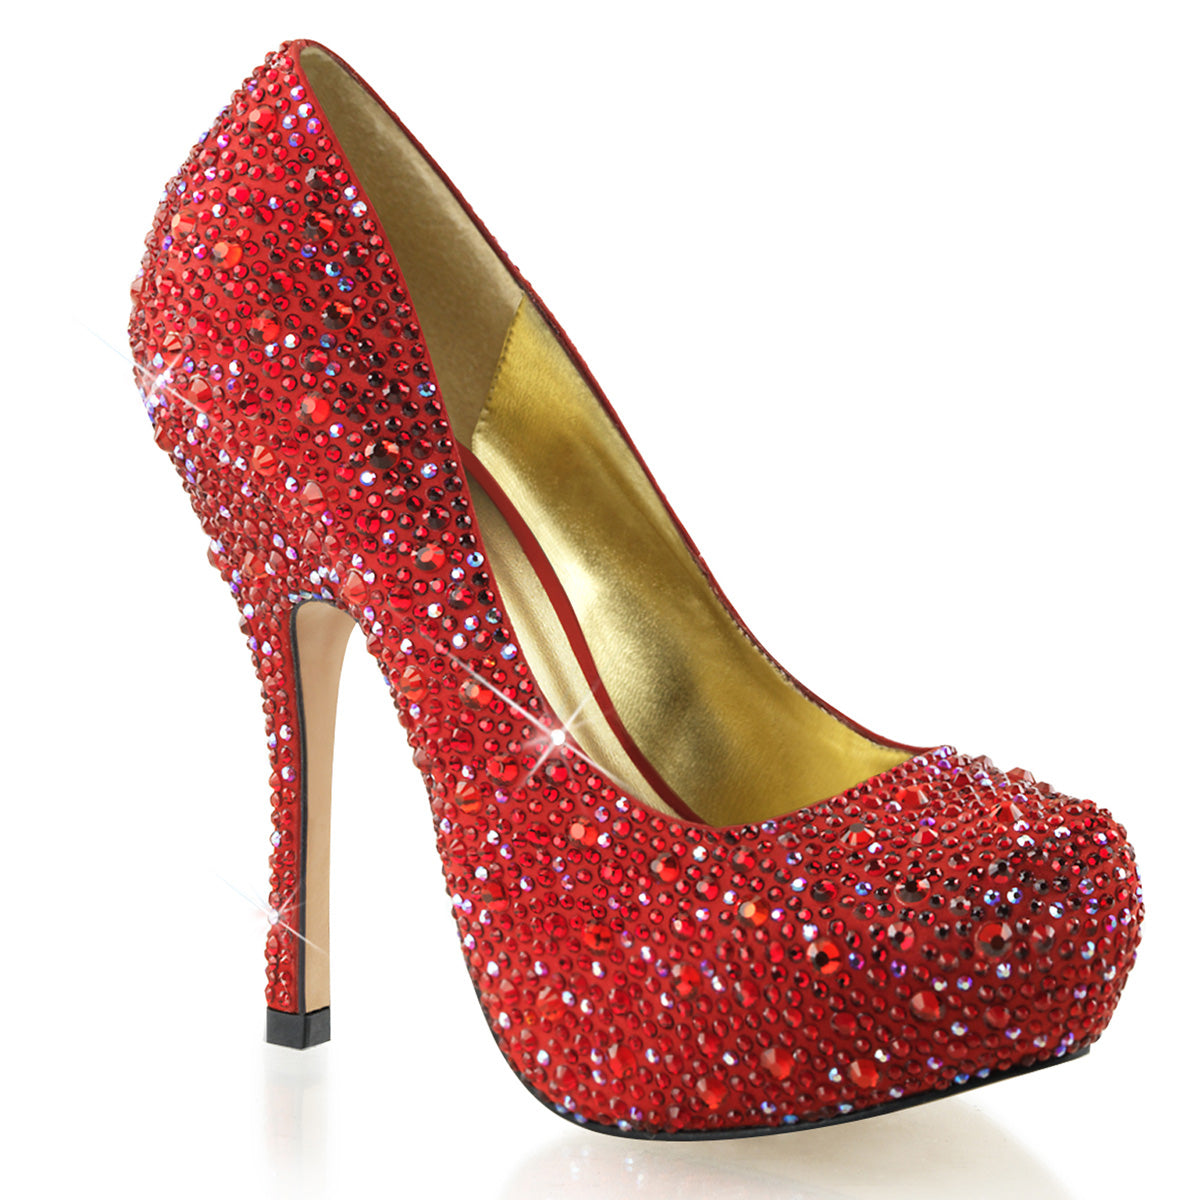 Fabulicious - FELICITY-20 - Red Satin - Shoes